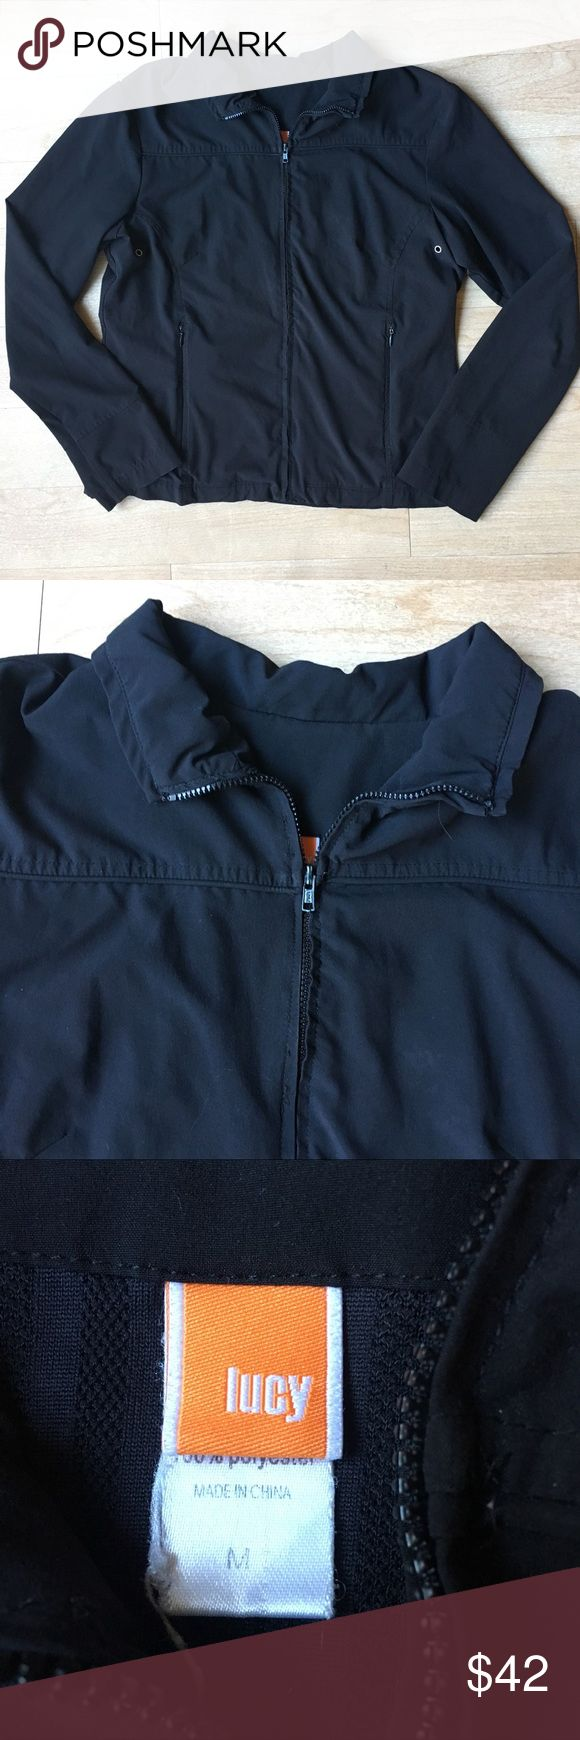 Lucy Athletic Lightweight Workout Zip Up Jacket M Excellent Condition. Lucy activewear full zip up breathable quick drying workout jacket. Perfect for running or outdoor workouts! Color is black. Lined. 100% Polyester. Size Medium Lucy Jackets & Coats